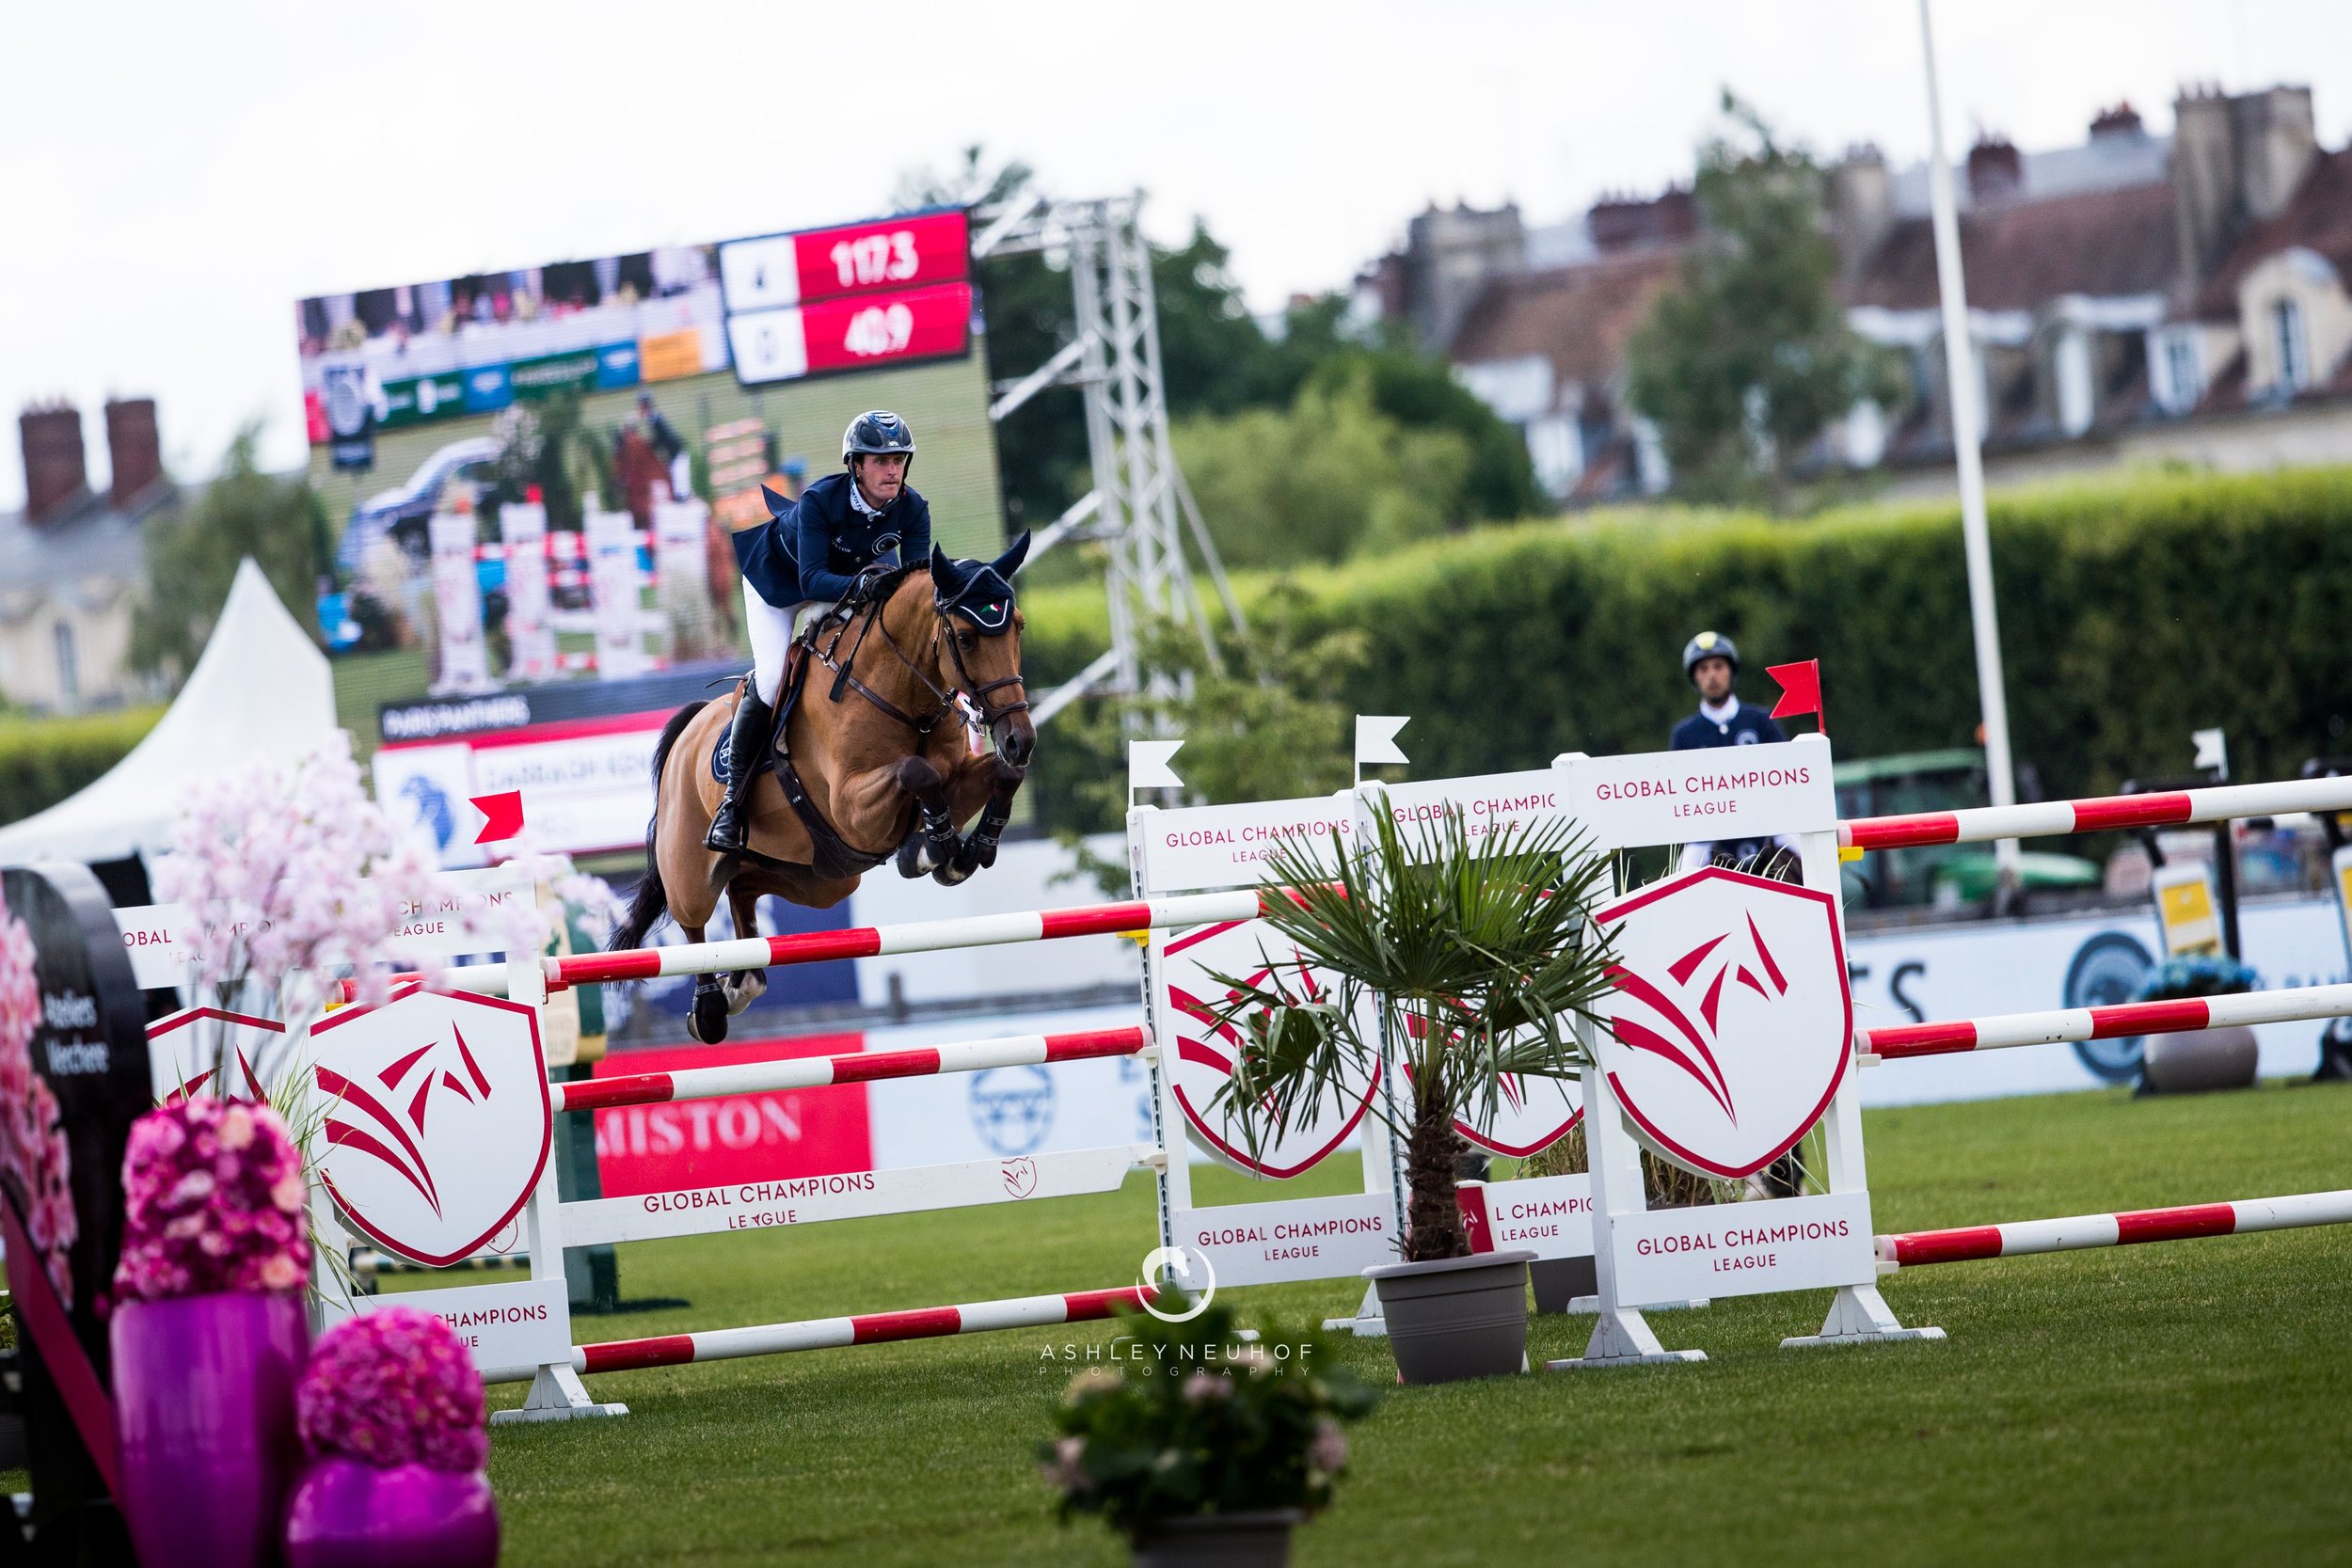 Darragh Kenny and Romeo at Global Champions League of Chantilly 2019. Photo by Ashley Neuhof Photography.